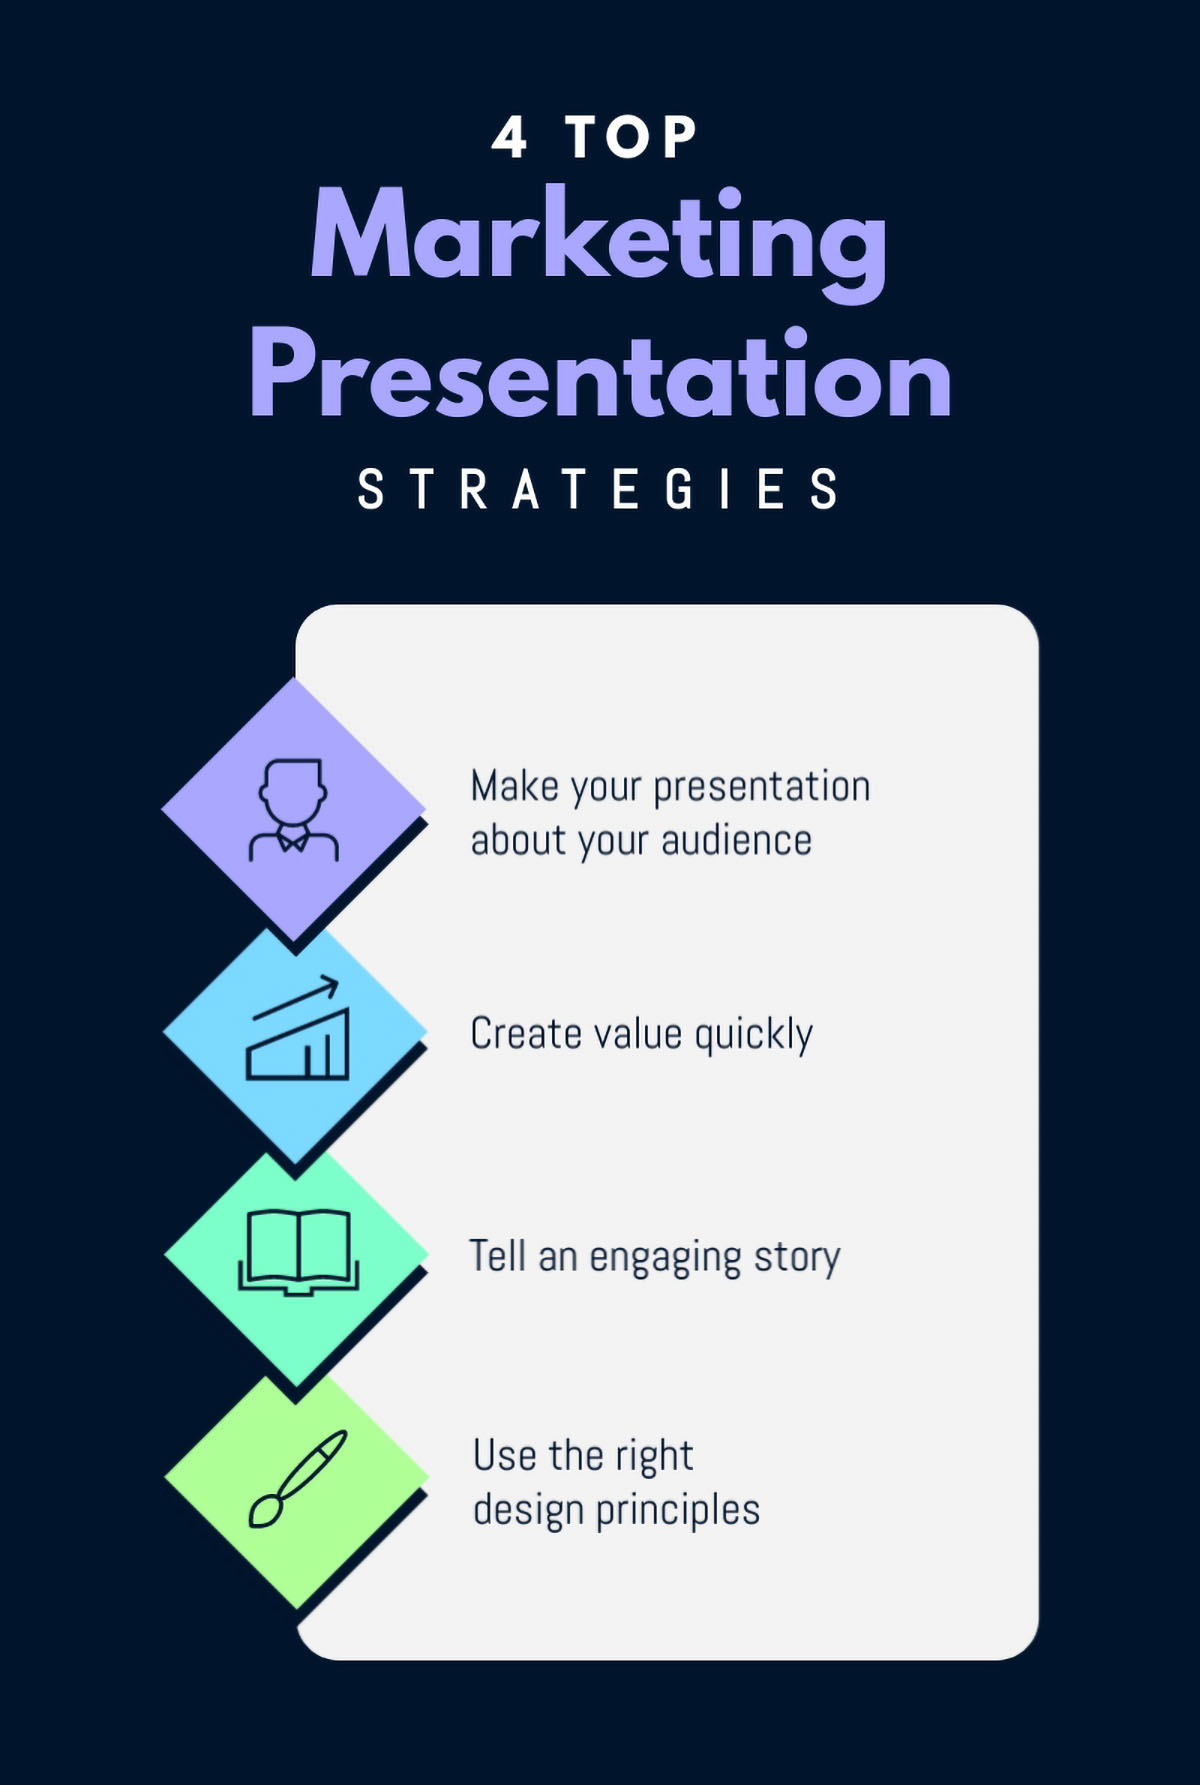 marketing presentation - 4 strategies for effective marketing presentations infographic